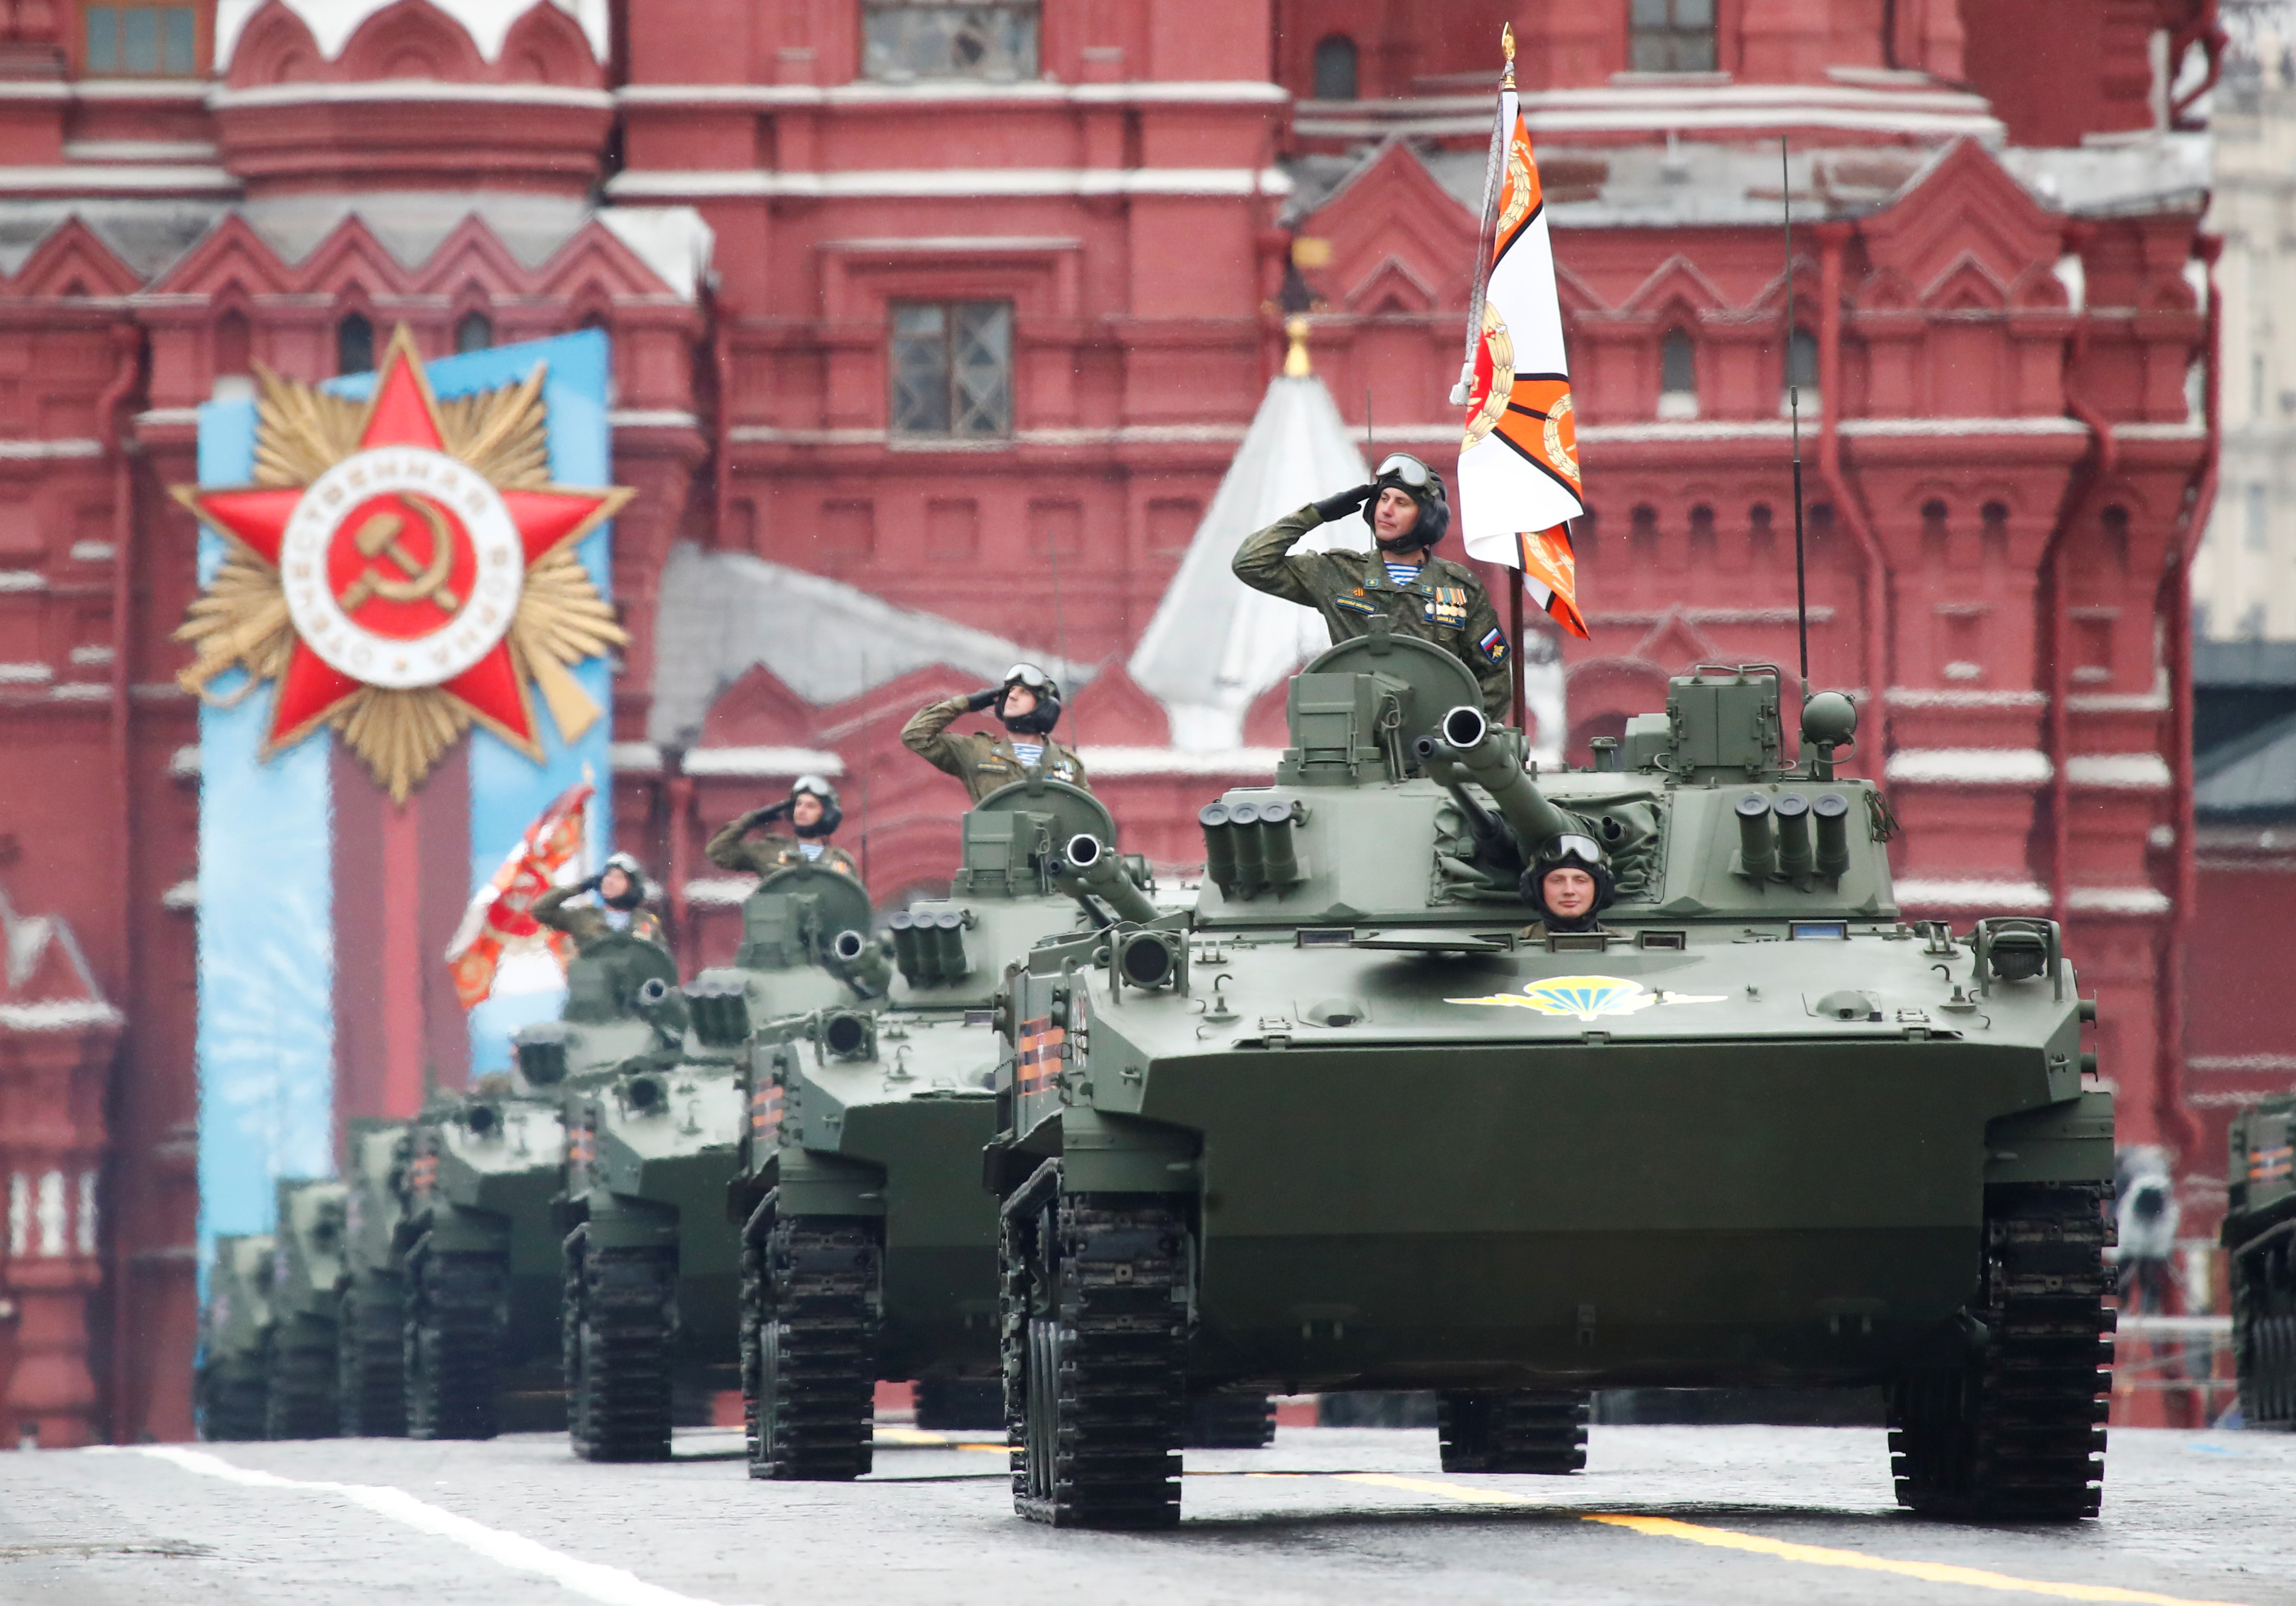 Russian service members drive BMD-4M infantry fighting vehicles during a military parade on Victory Day, which marks the 76th anniversary of the victory over Nazi Germany in World War Two, in Red Square in central Moscow, Russia May 9, 2021. REUTERS/Maxim Shemetov